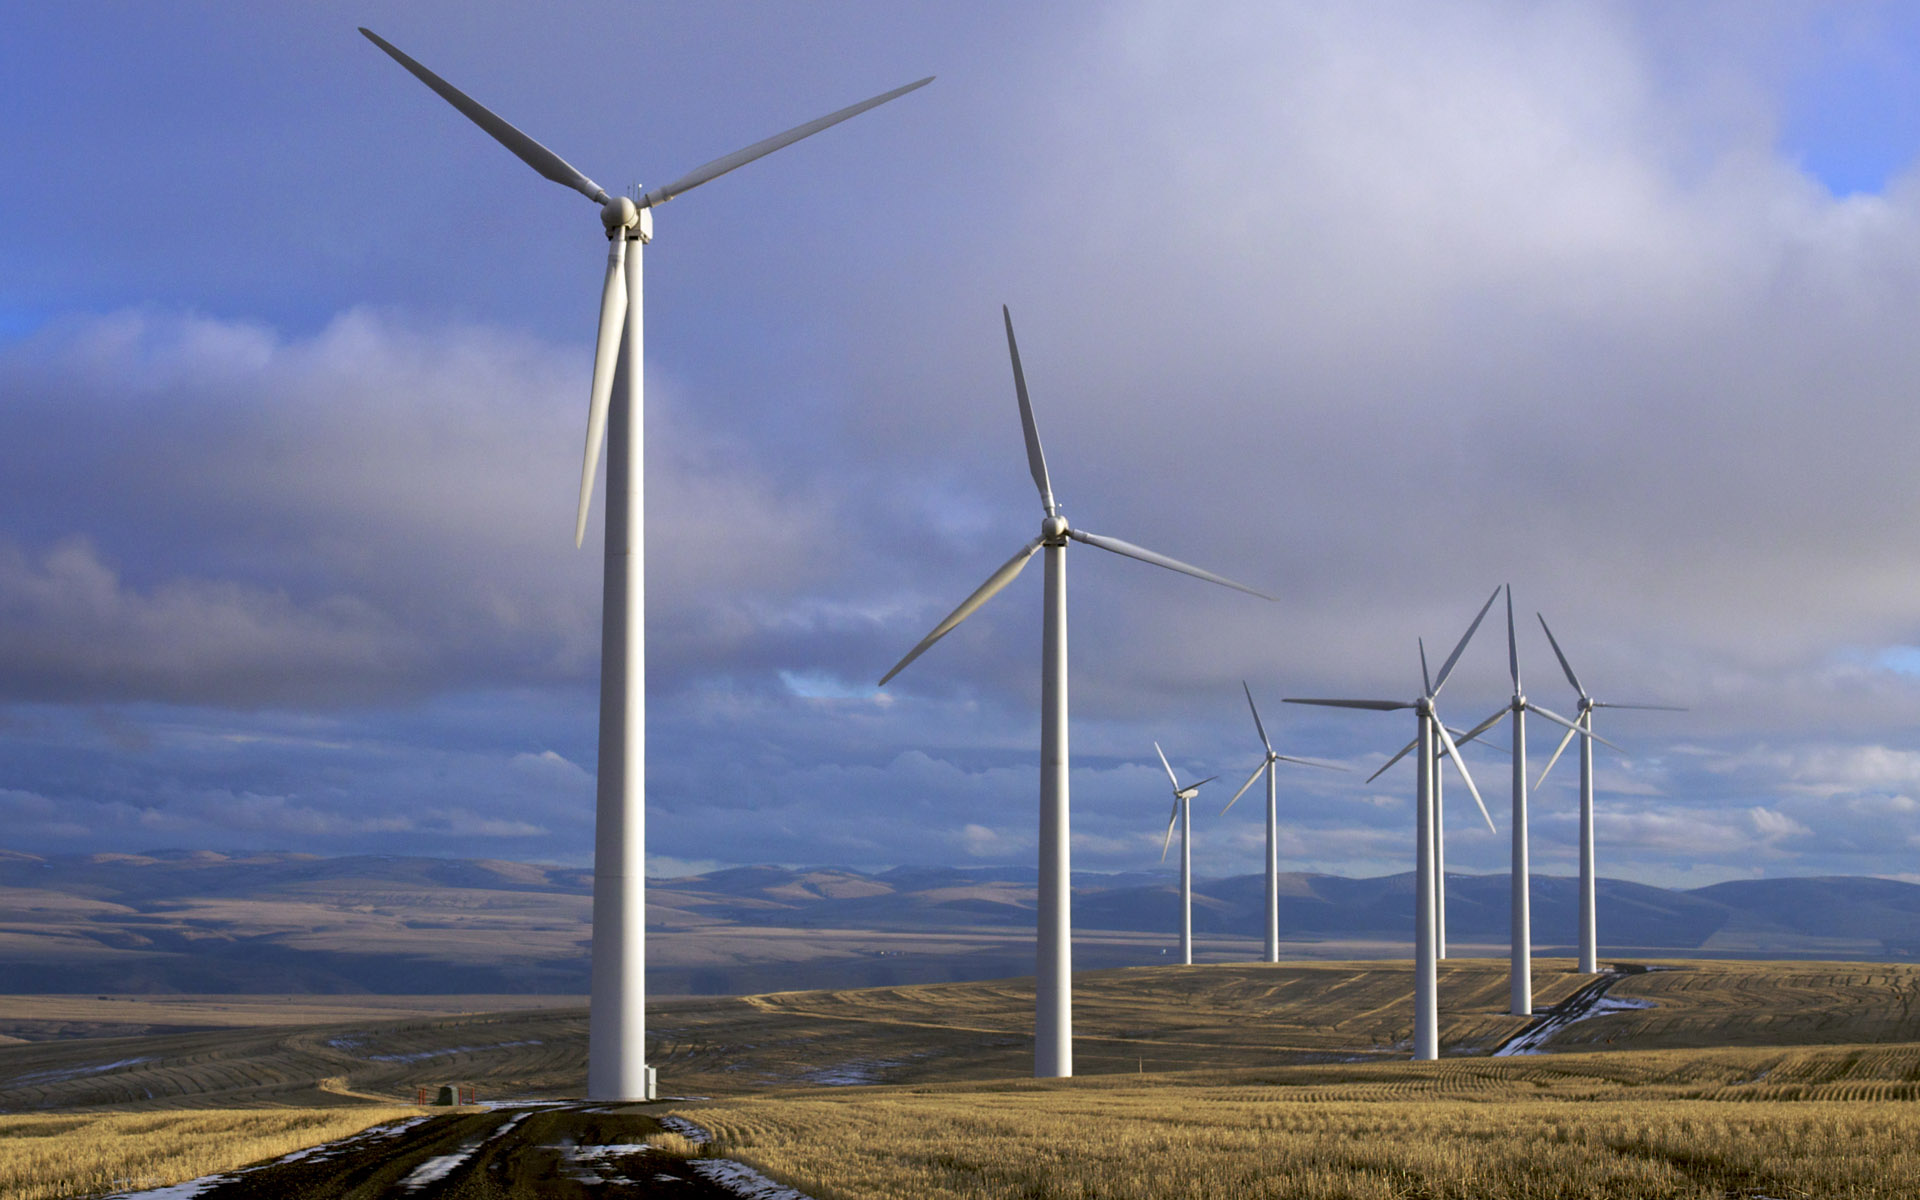 Fantastic Wind Energy Wallpaper 45495 1920x1200 Px